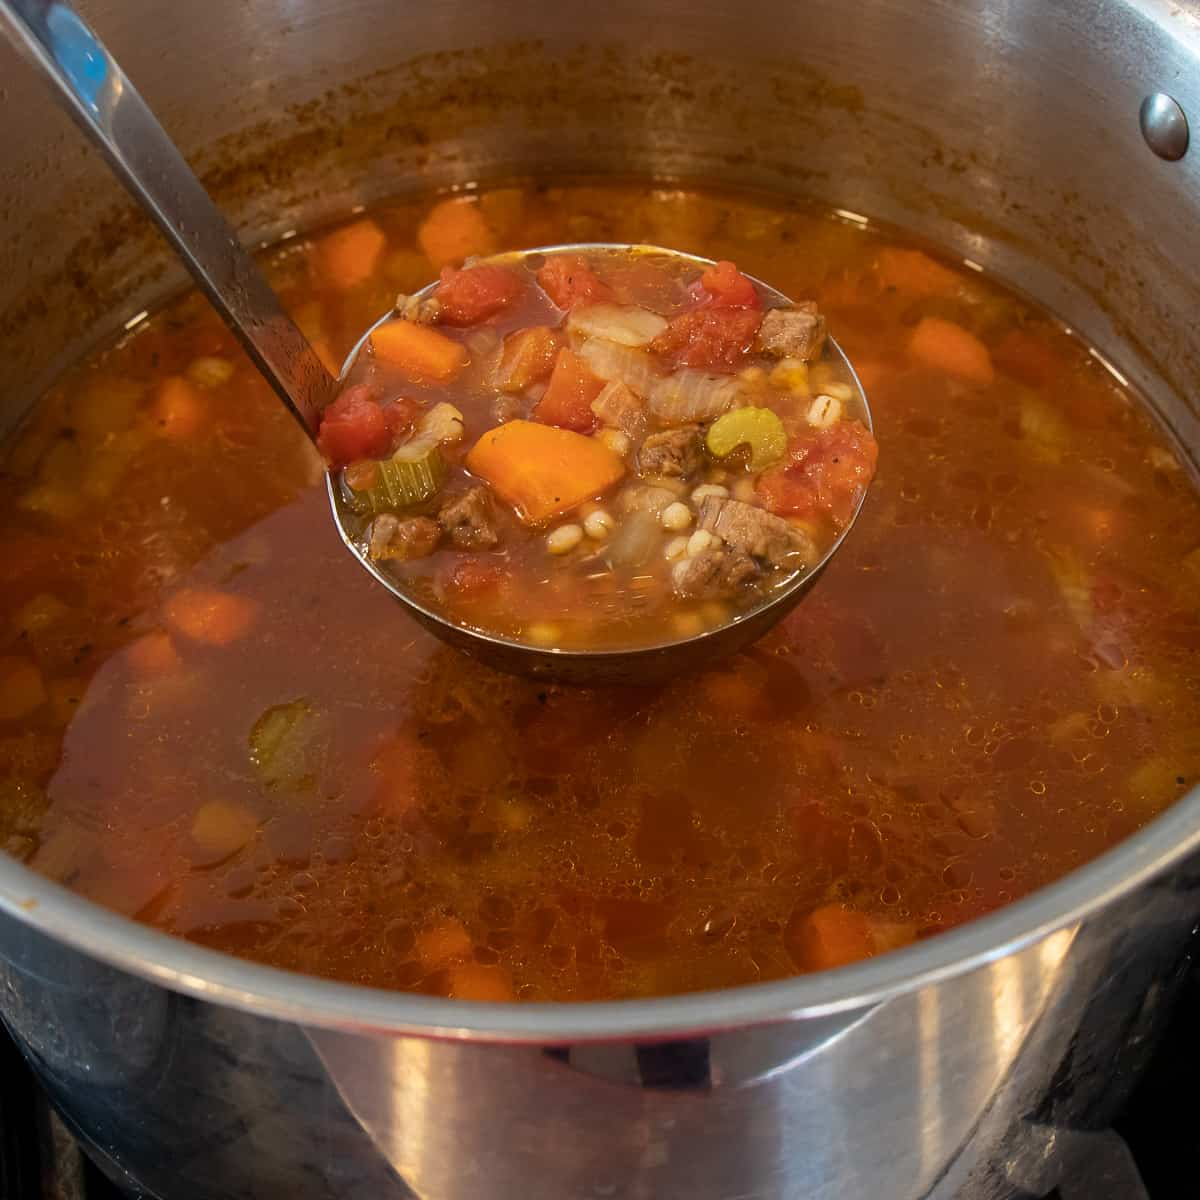 Scooping a ladle of fresh soup out of a large stock pot